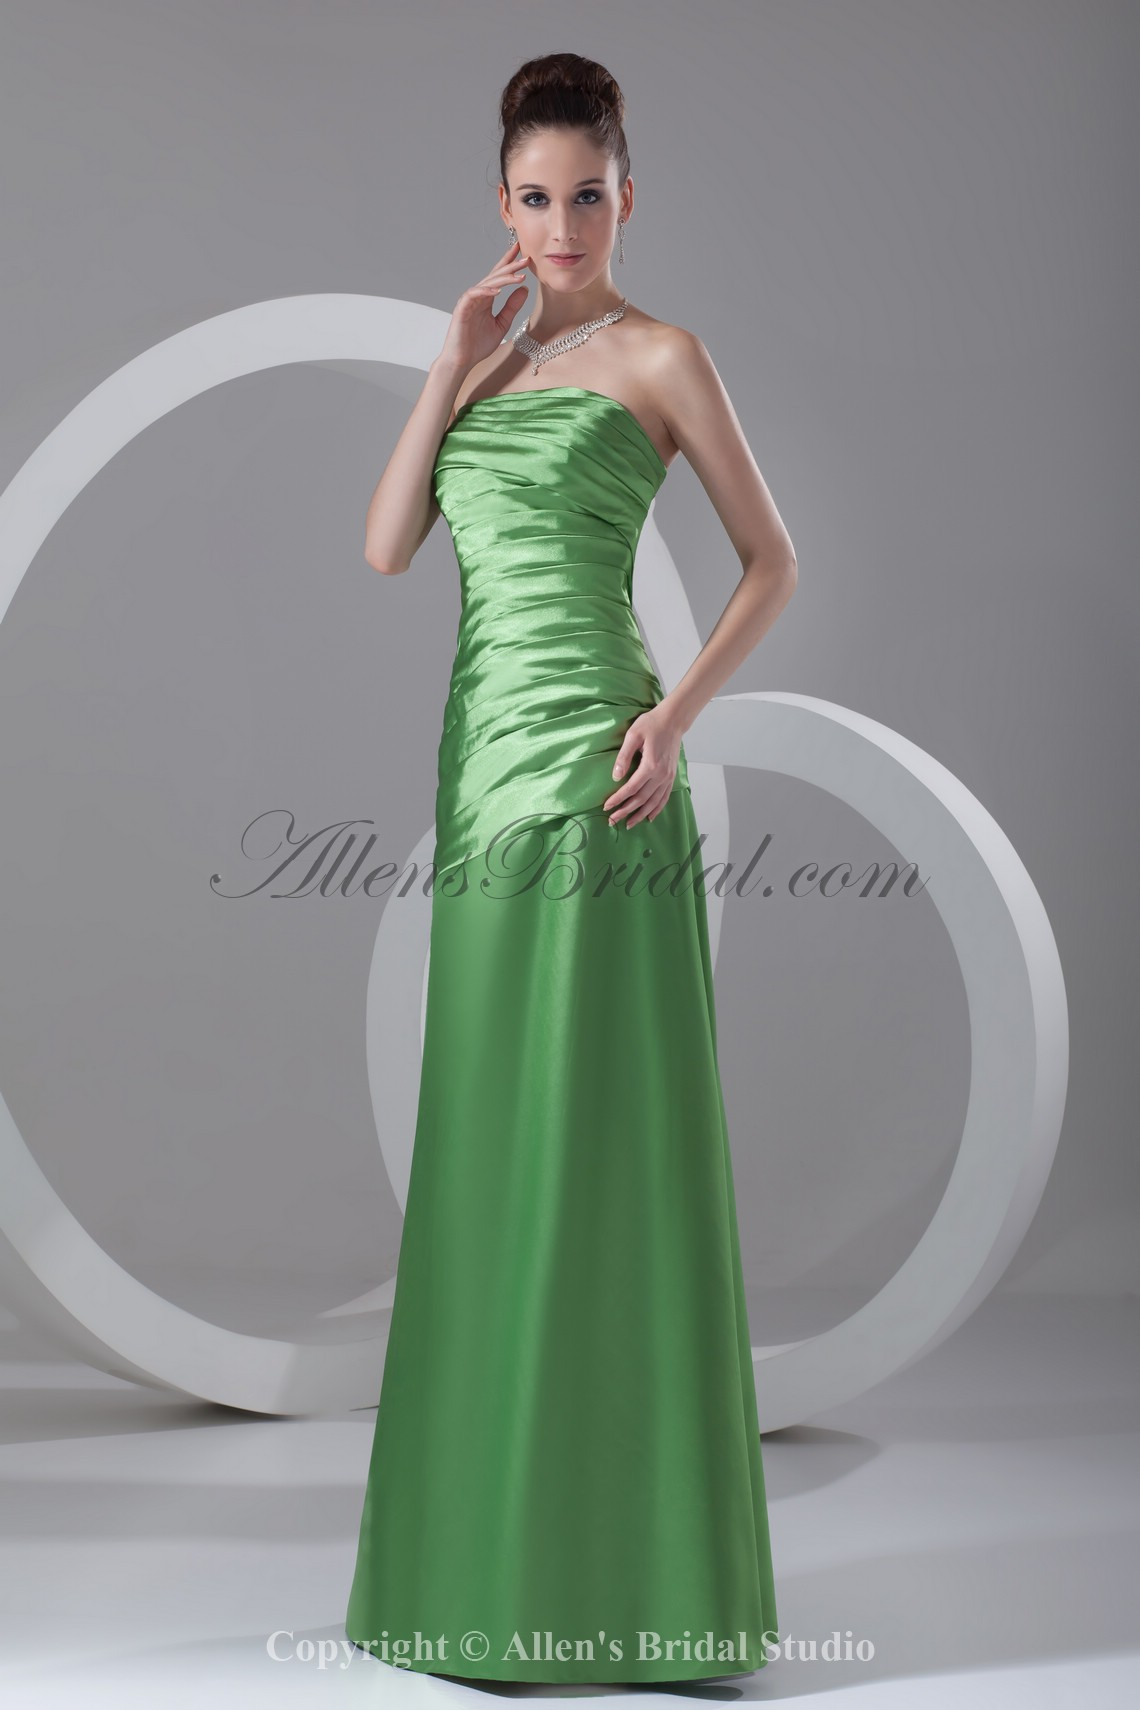 /455-3641/satin-strapless-neckline-floor-length-a-line-directionally-ruched-prom-dress.jpg